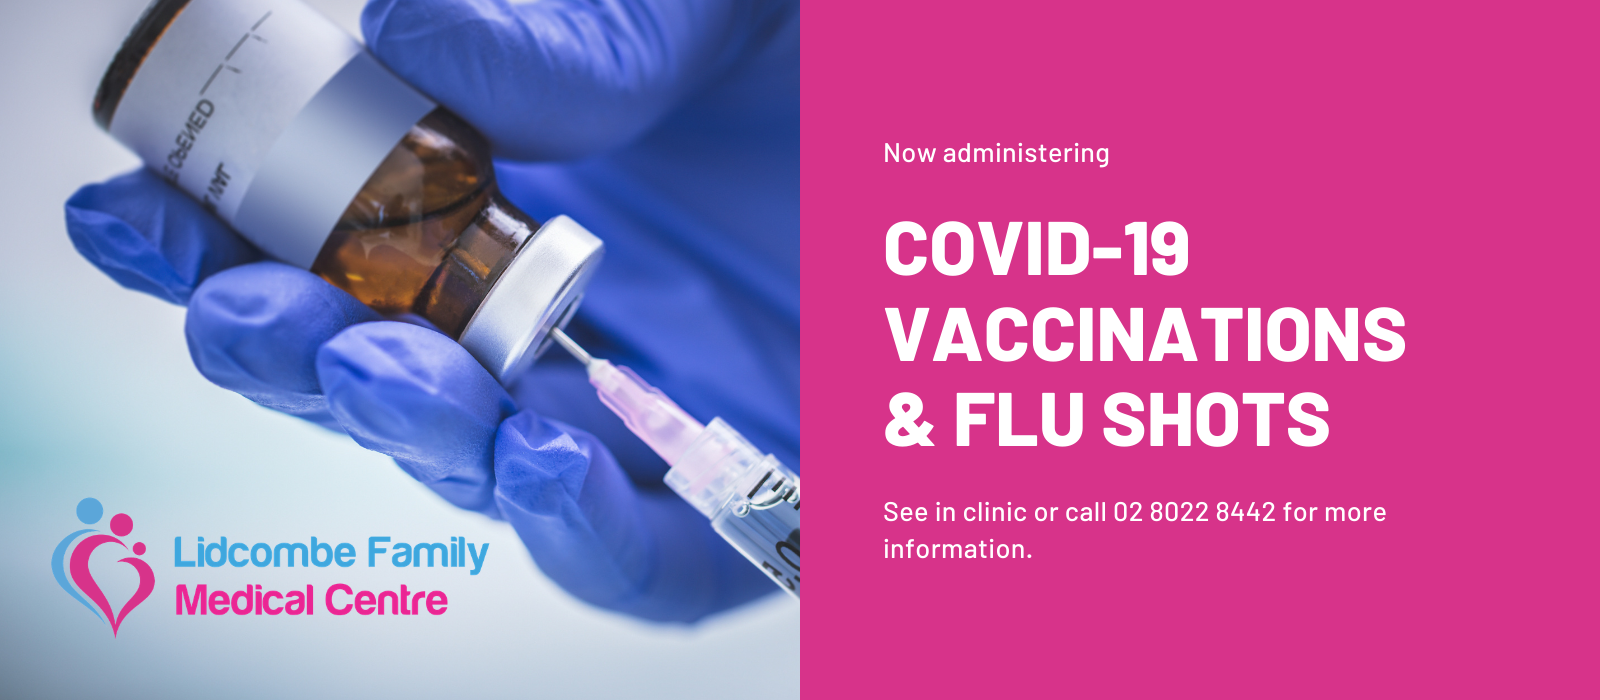 Lidcombe Family Medical Centre_COVID-19 Vaccinations